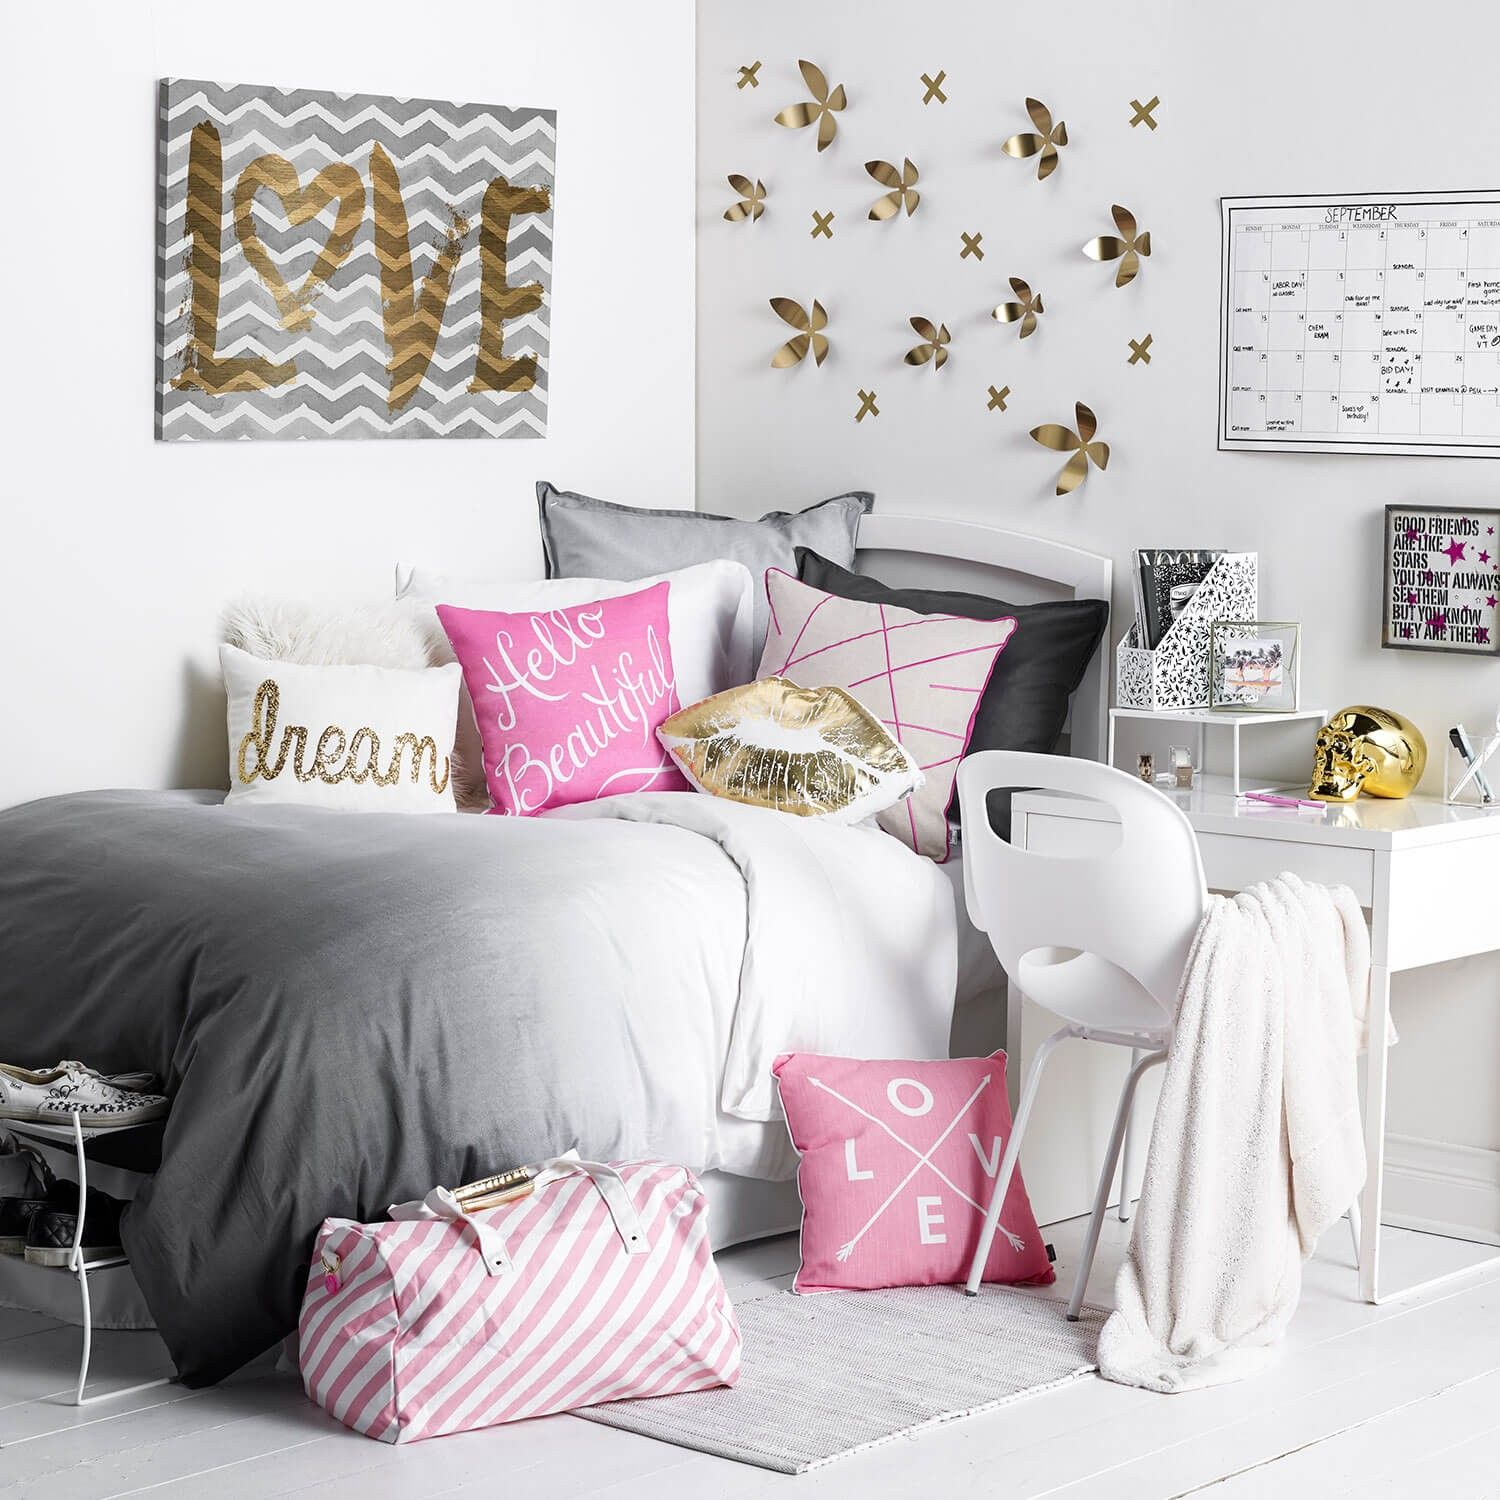 Black and white and pink bedrooms - Black White And Pink And Metallic